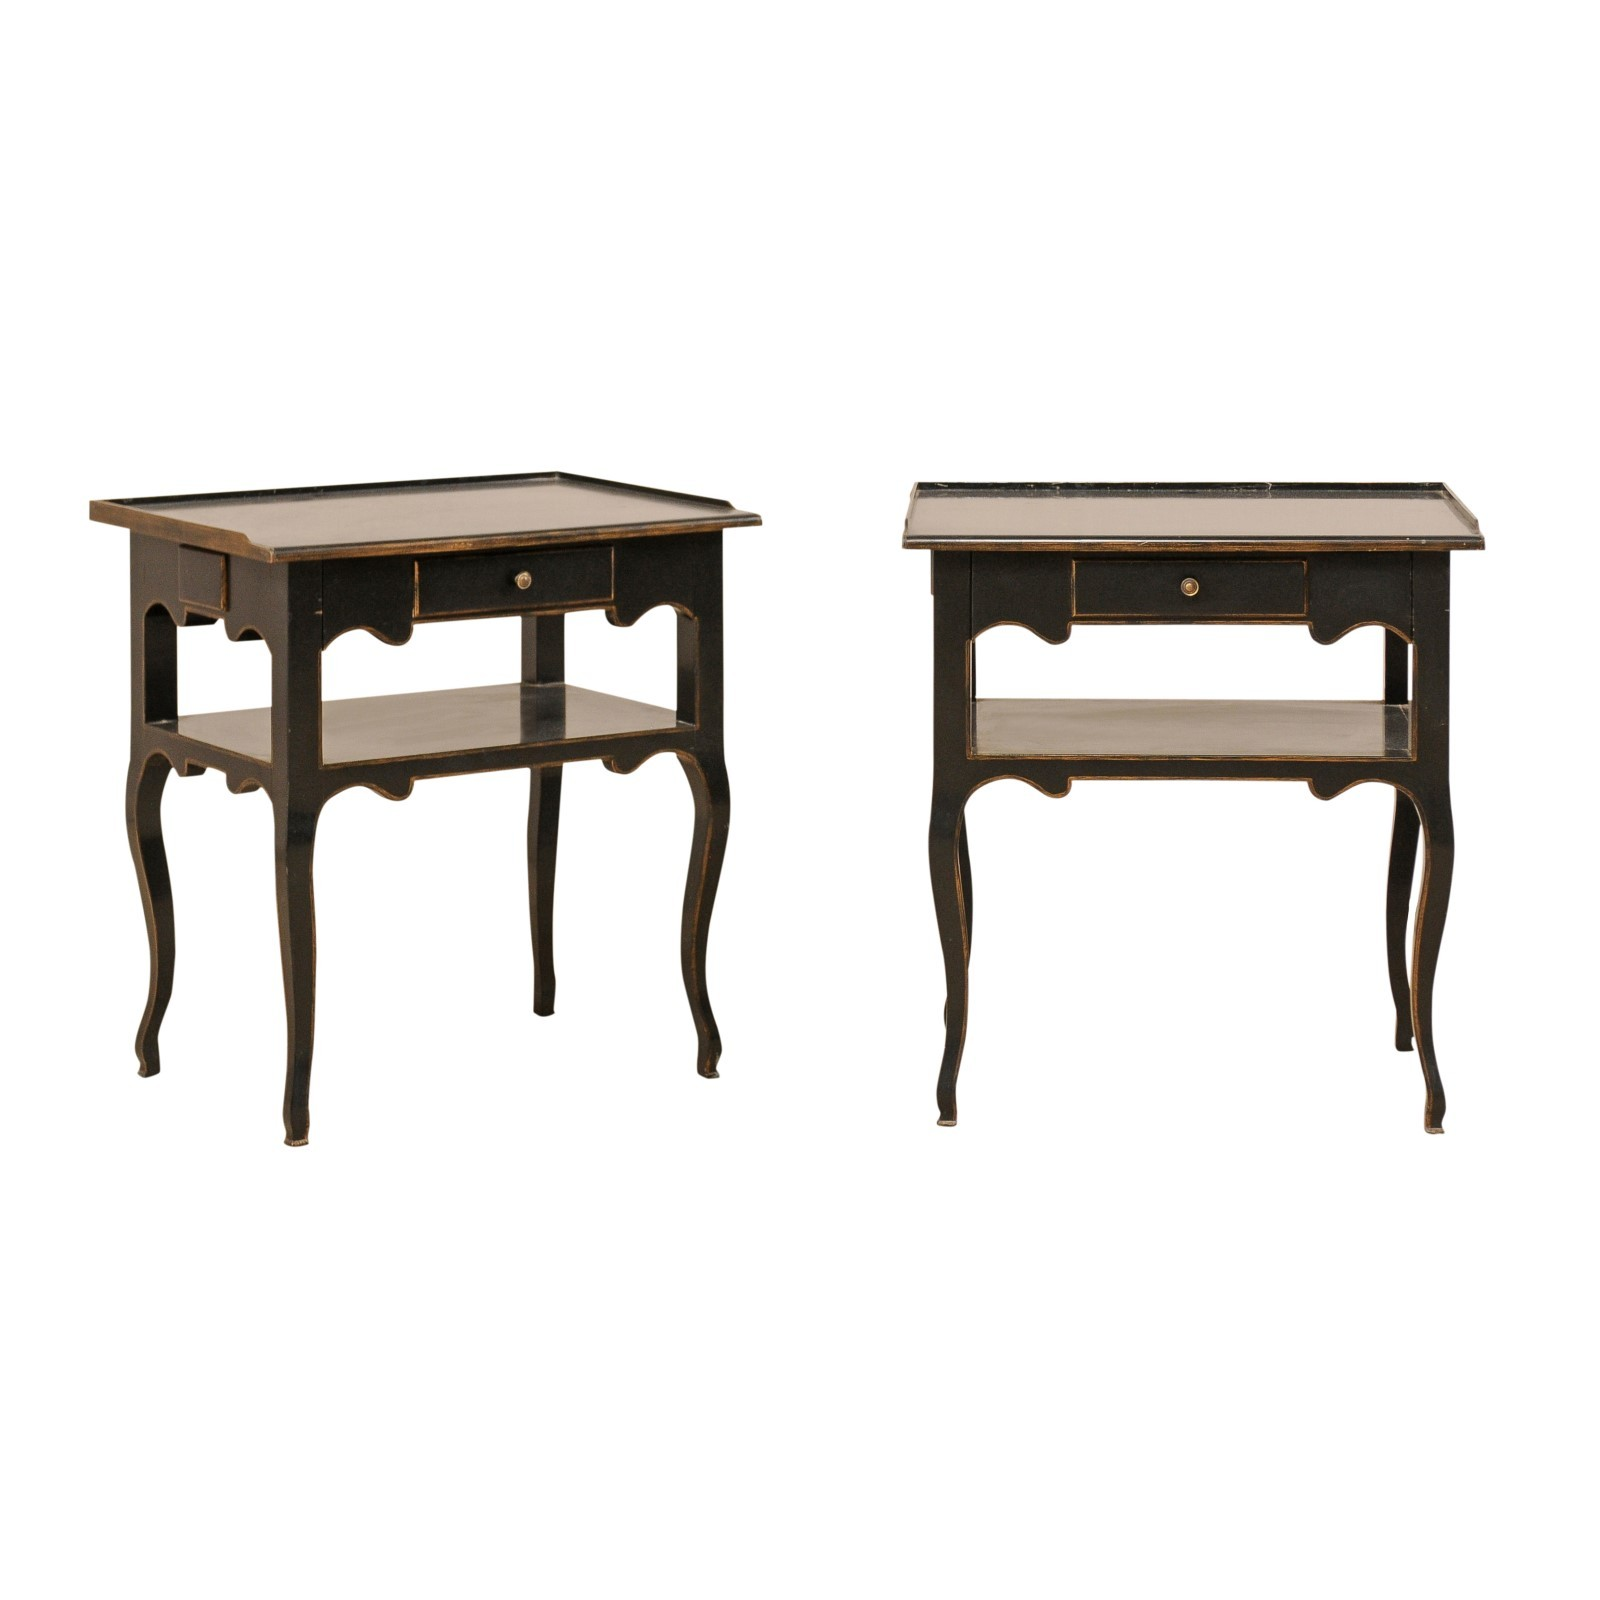 Pair Vintage Two-Tiered End Tables in Black